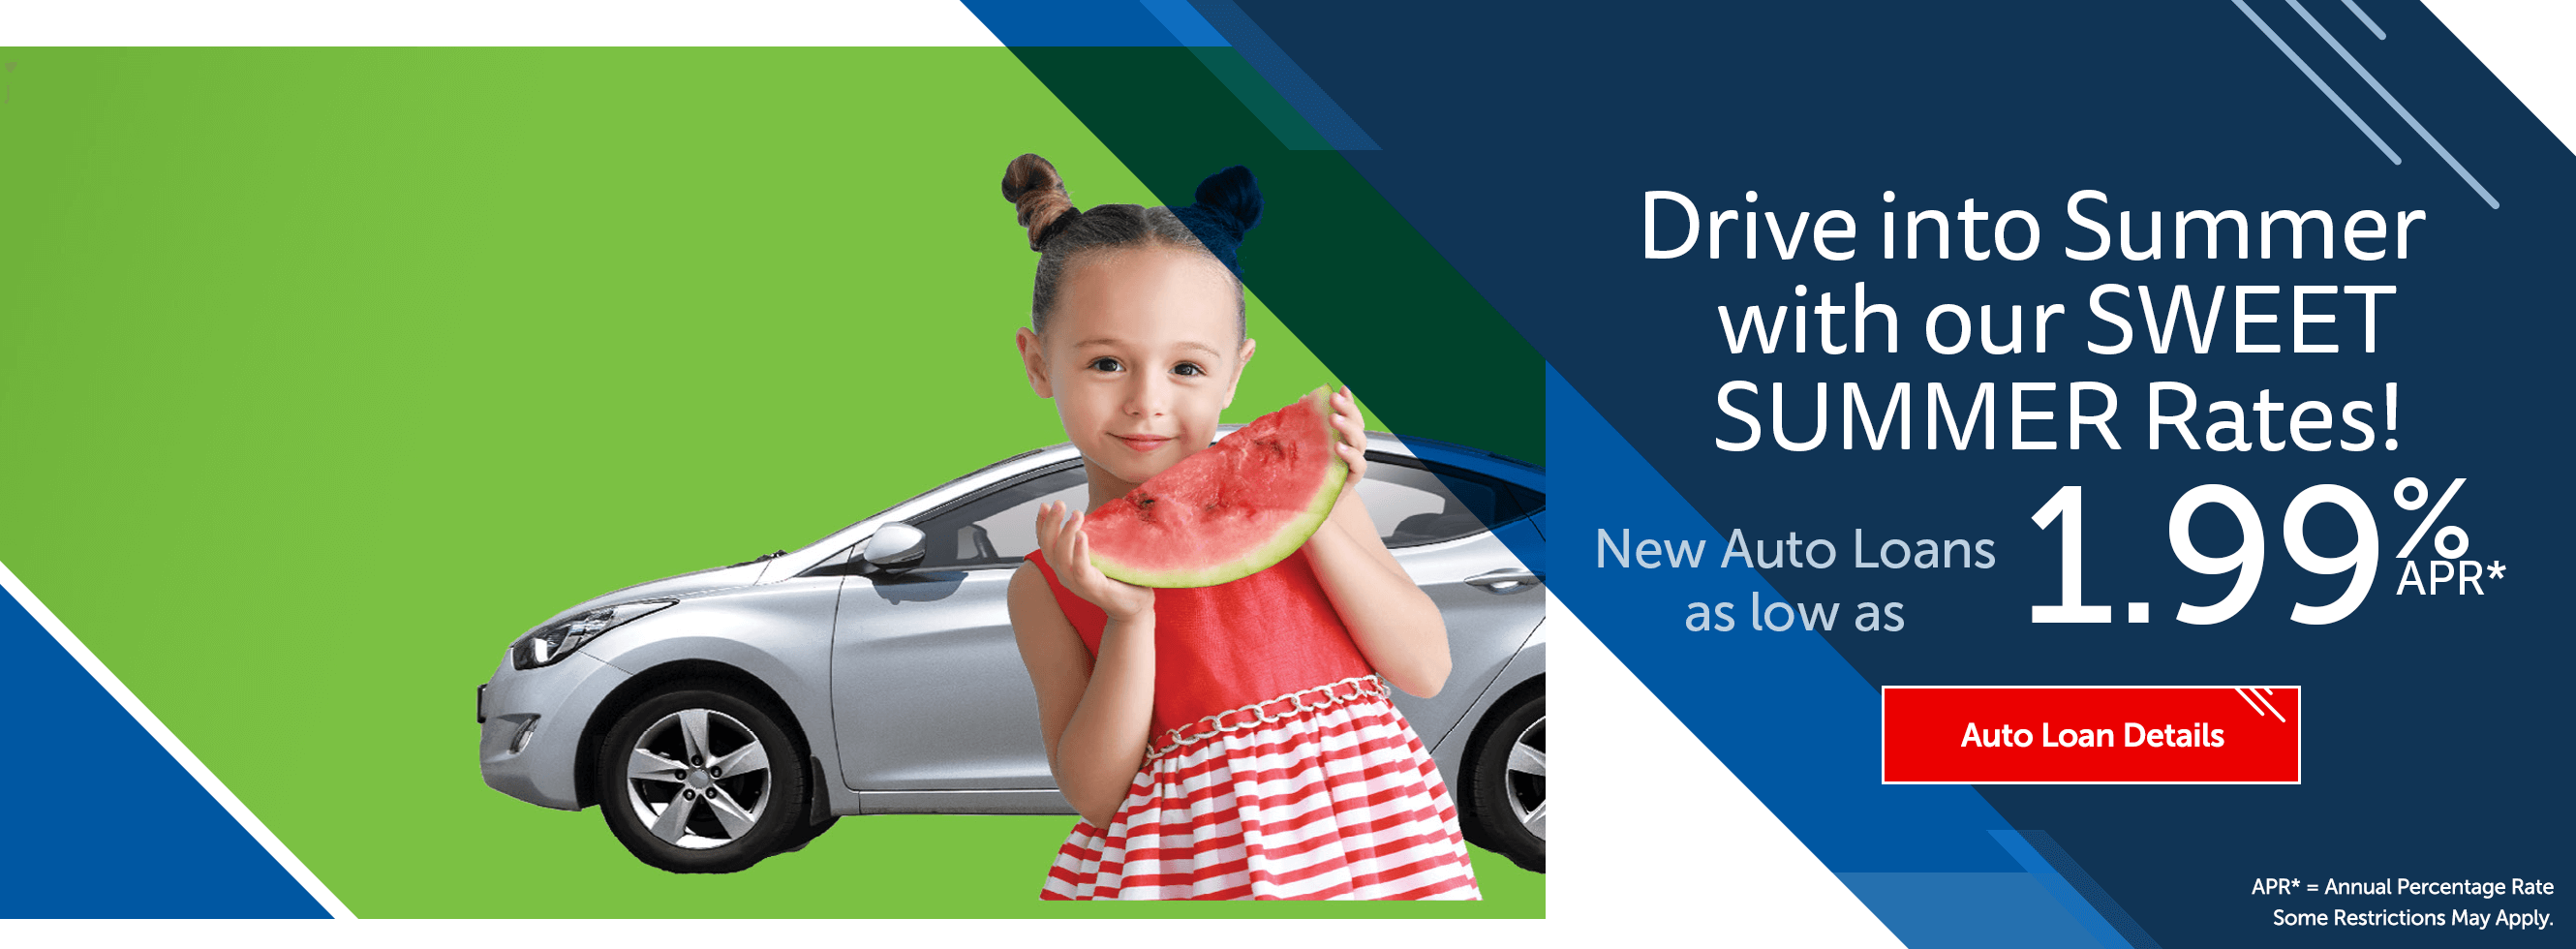 Drive into summer with our sweet summer rates